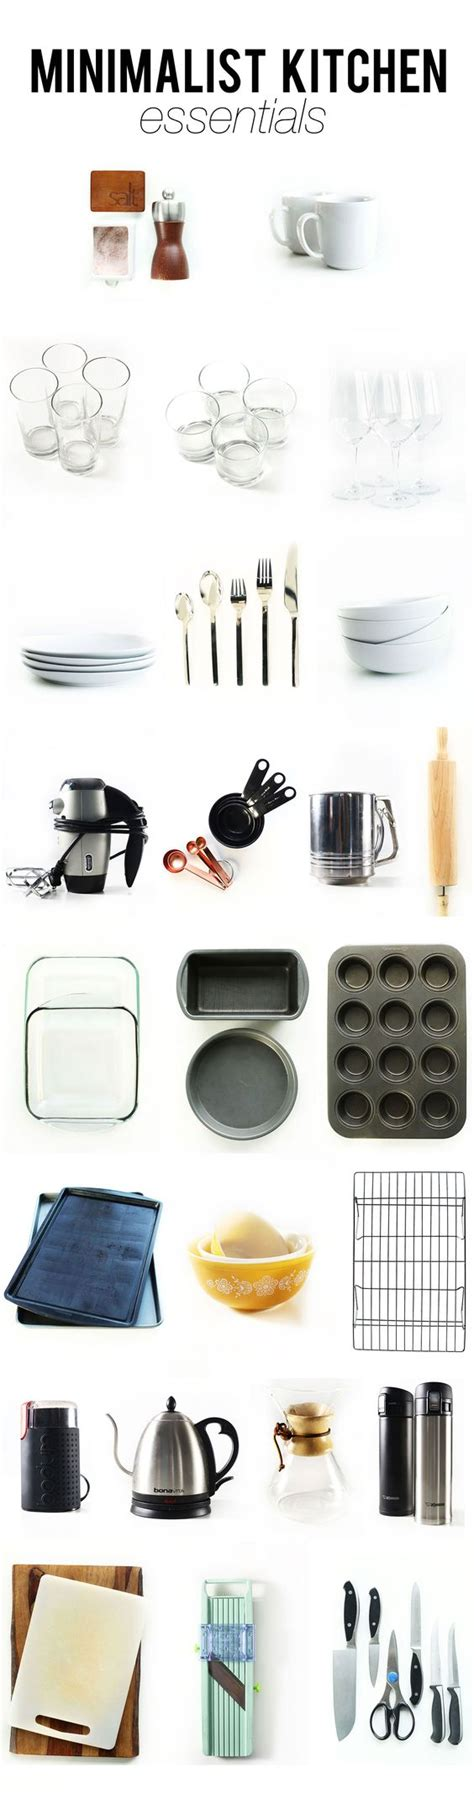 kitchen essential kitchen essentials minimalist kitchen and kitchens on